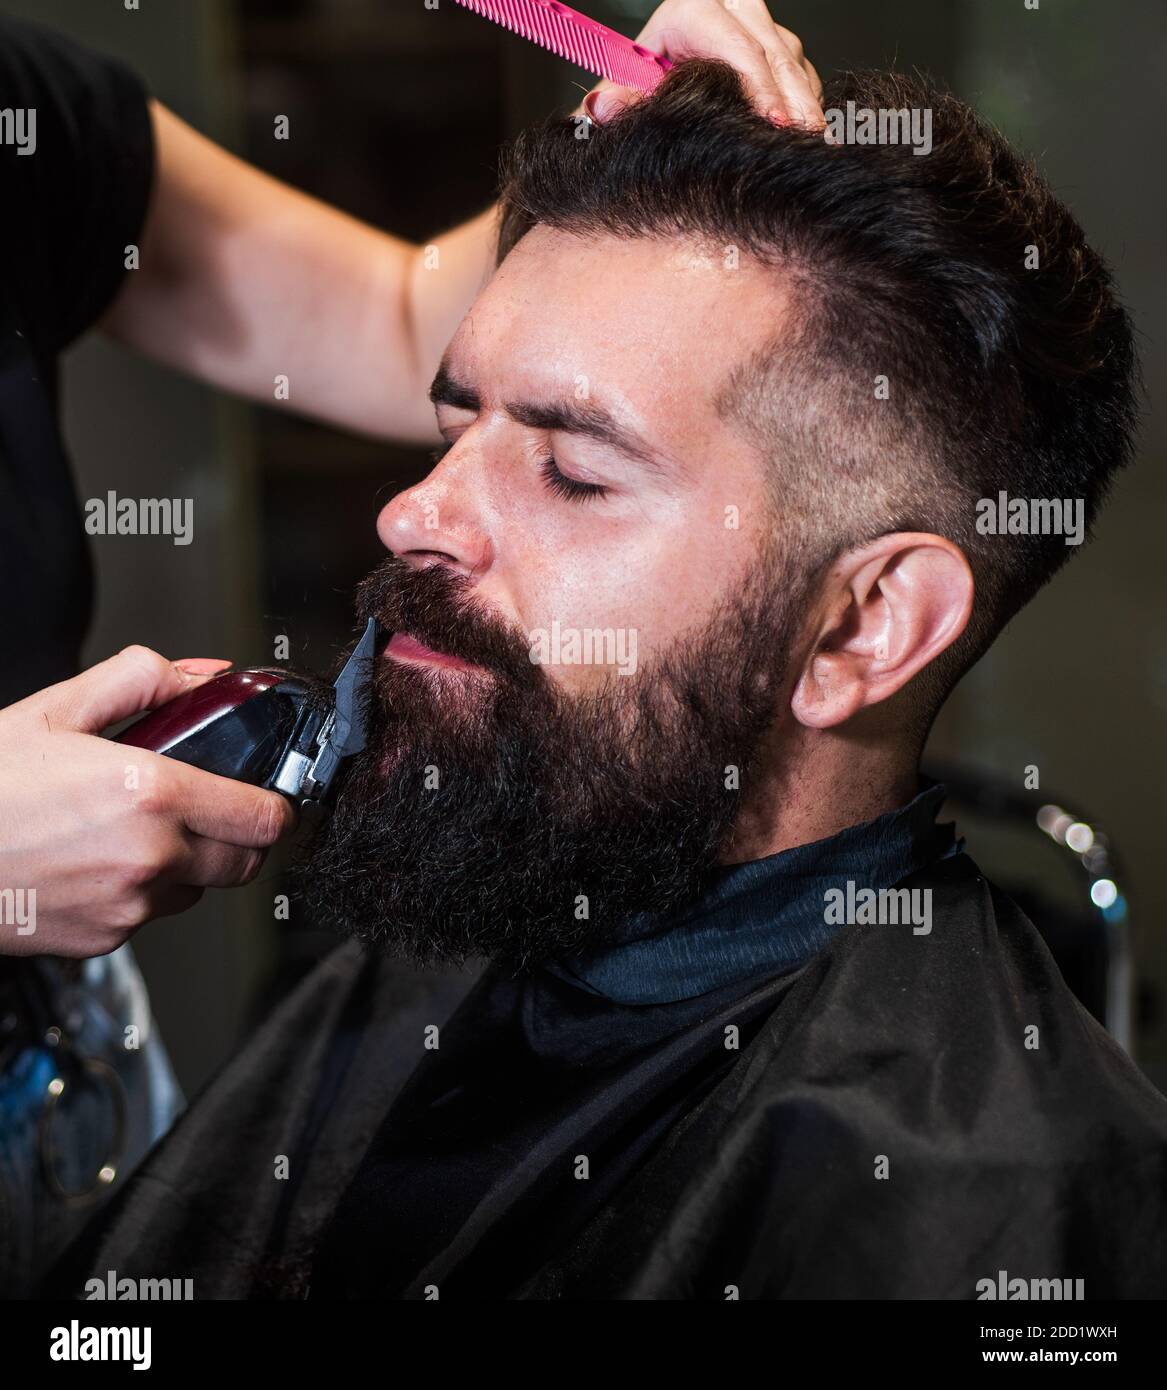 Men Trendy Hair Cut High Resolution Stock Photography And Images Alamy